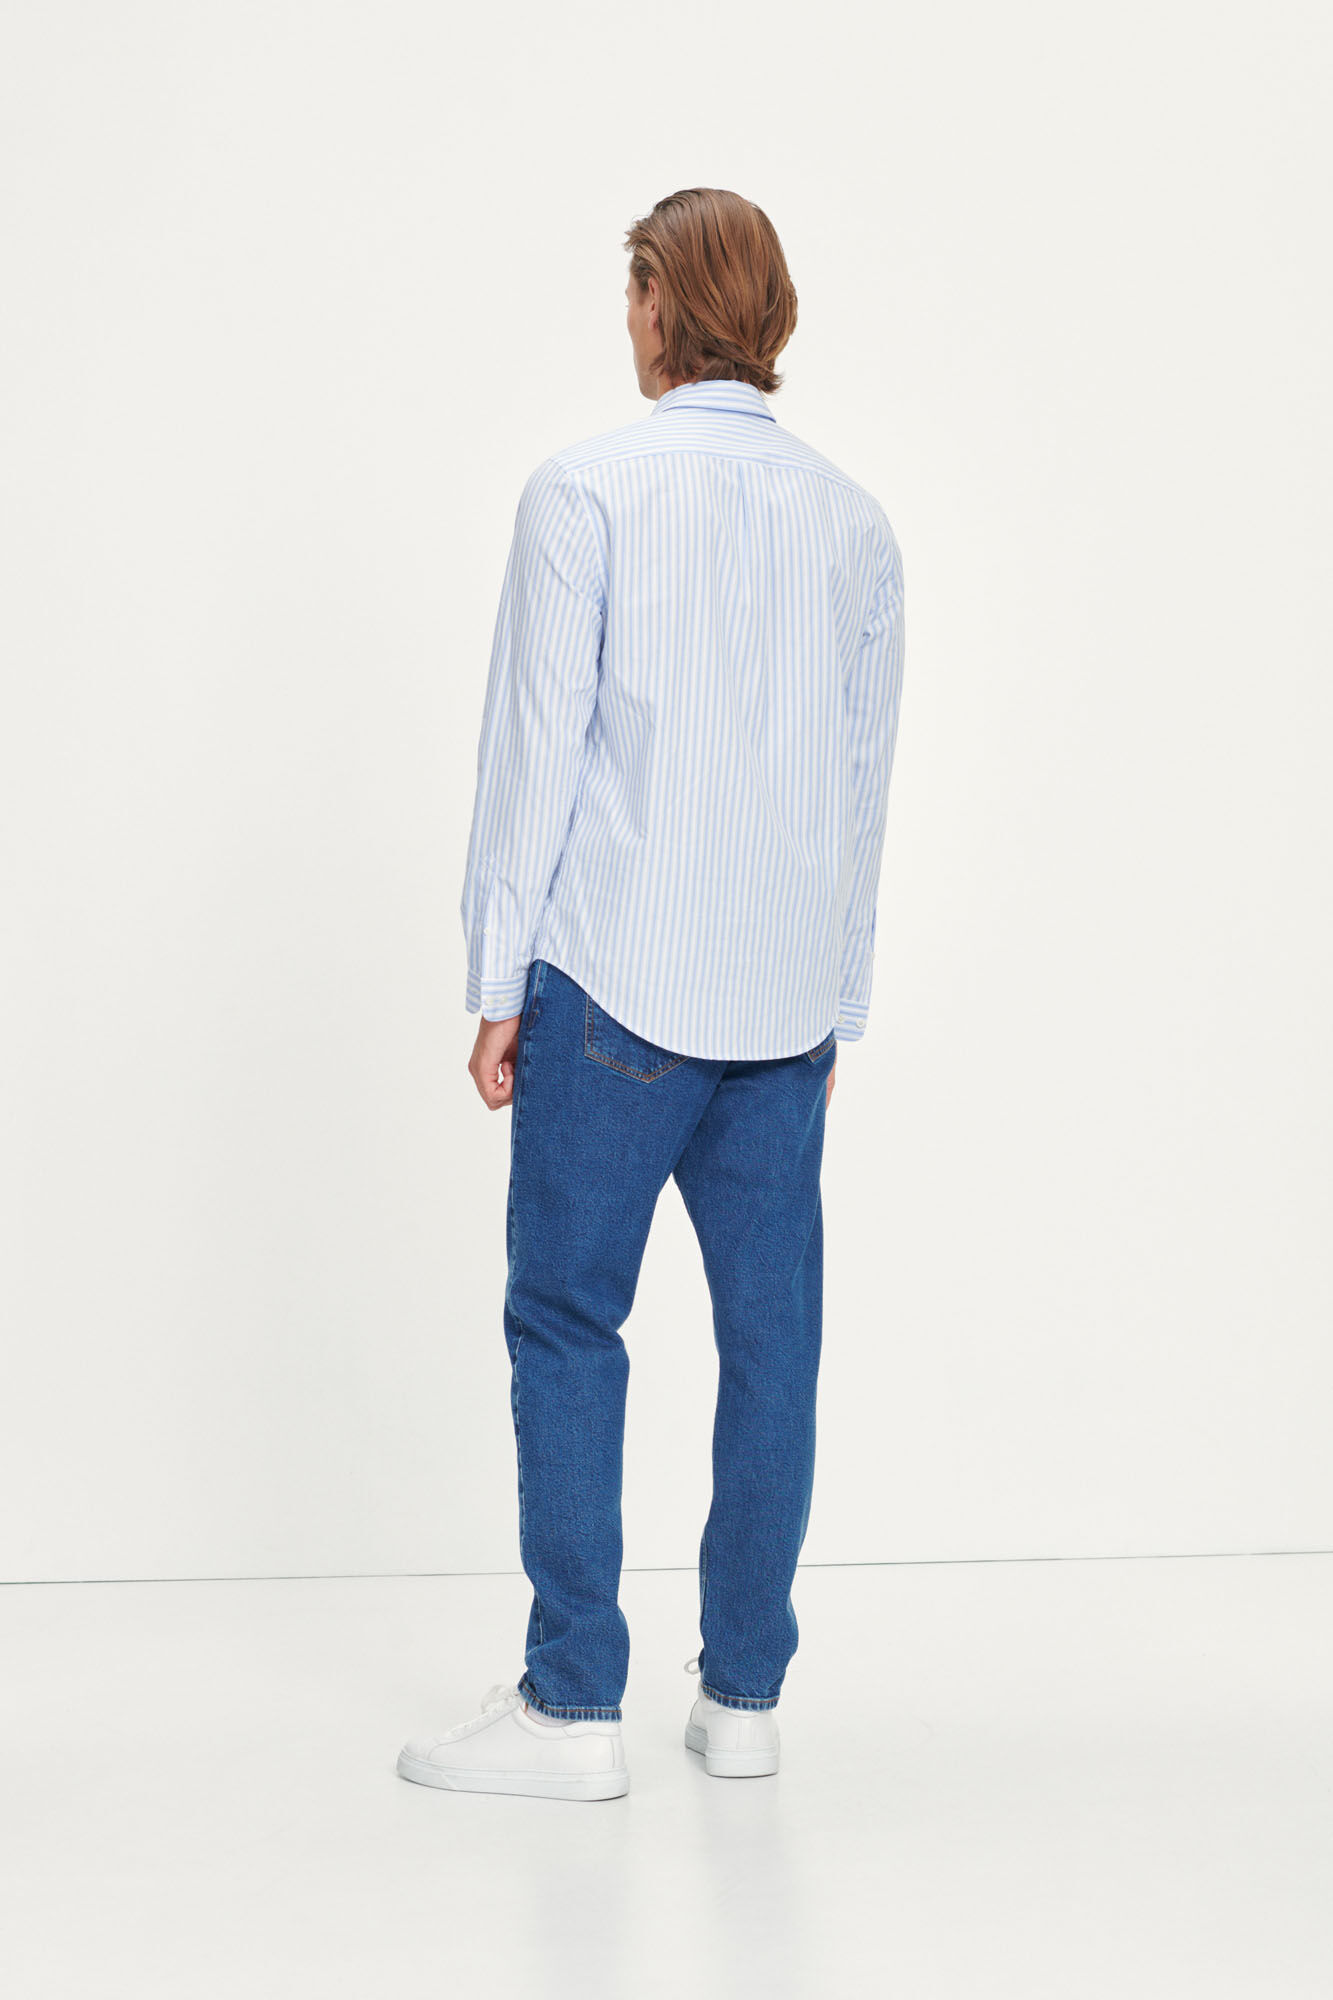 Liam NP shirt 13072, DUSTY BLUE ST.